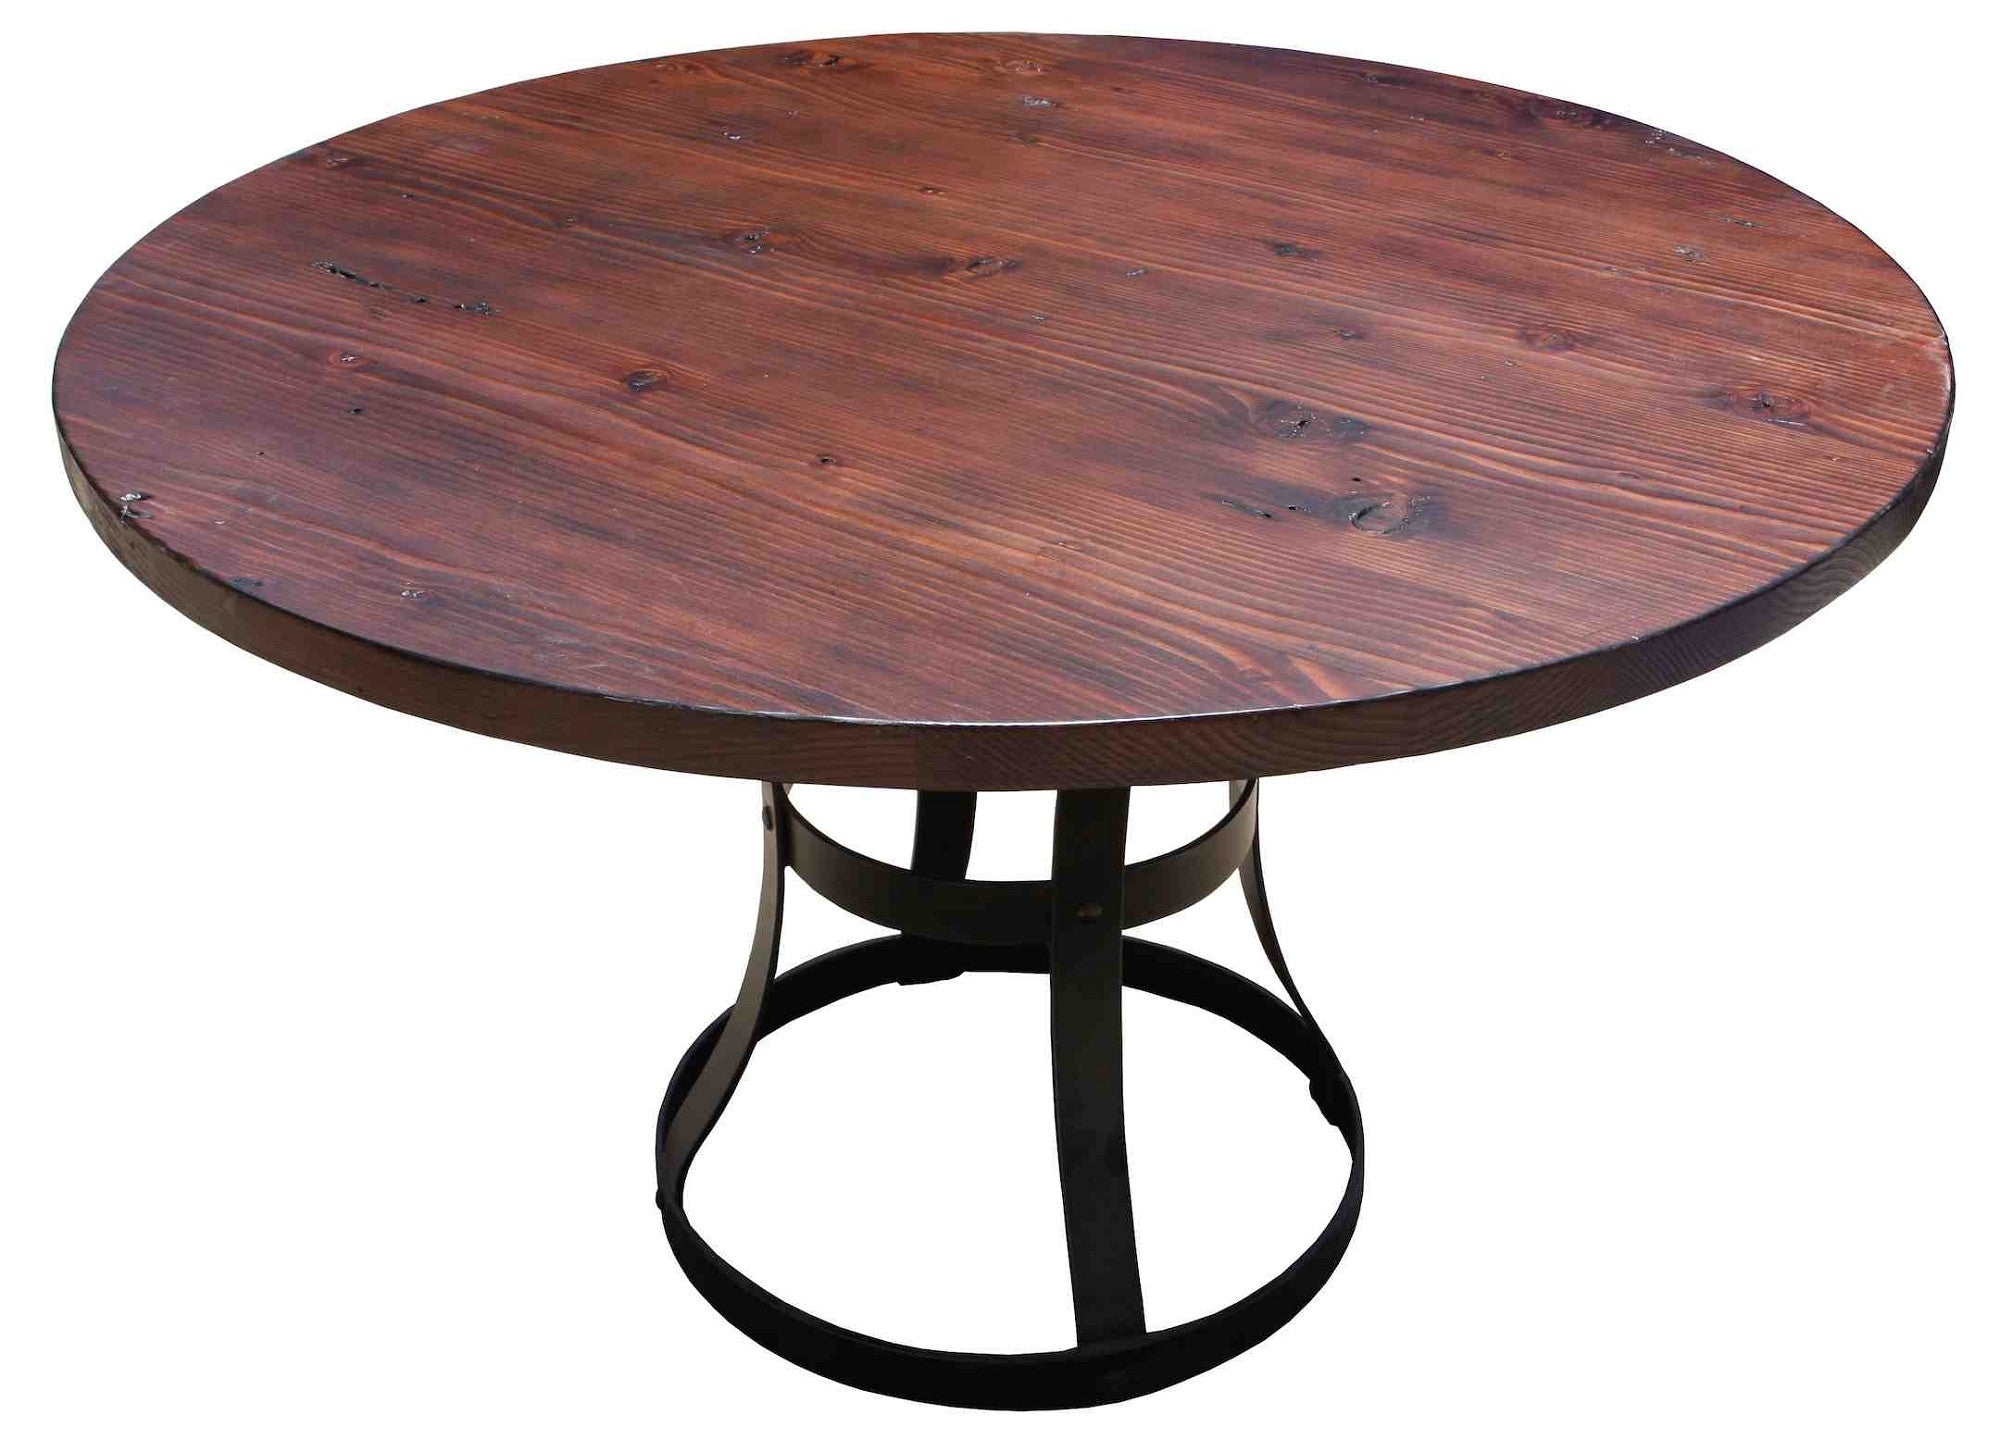 Detroit Dining Table In Reclaimed Wood And Metal Mortise Tenon